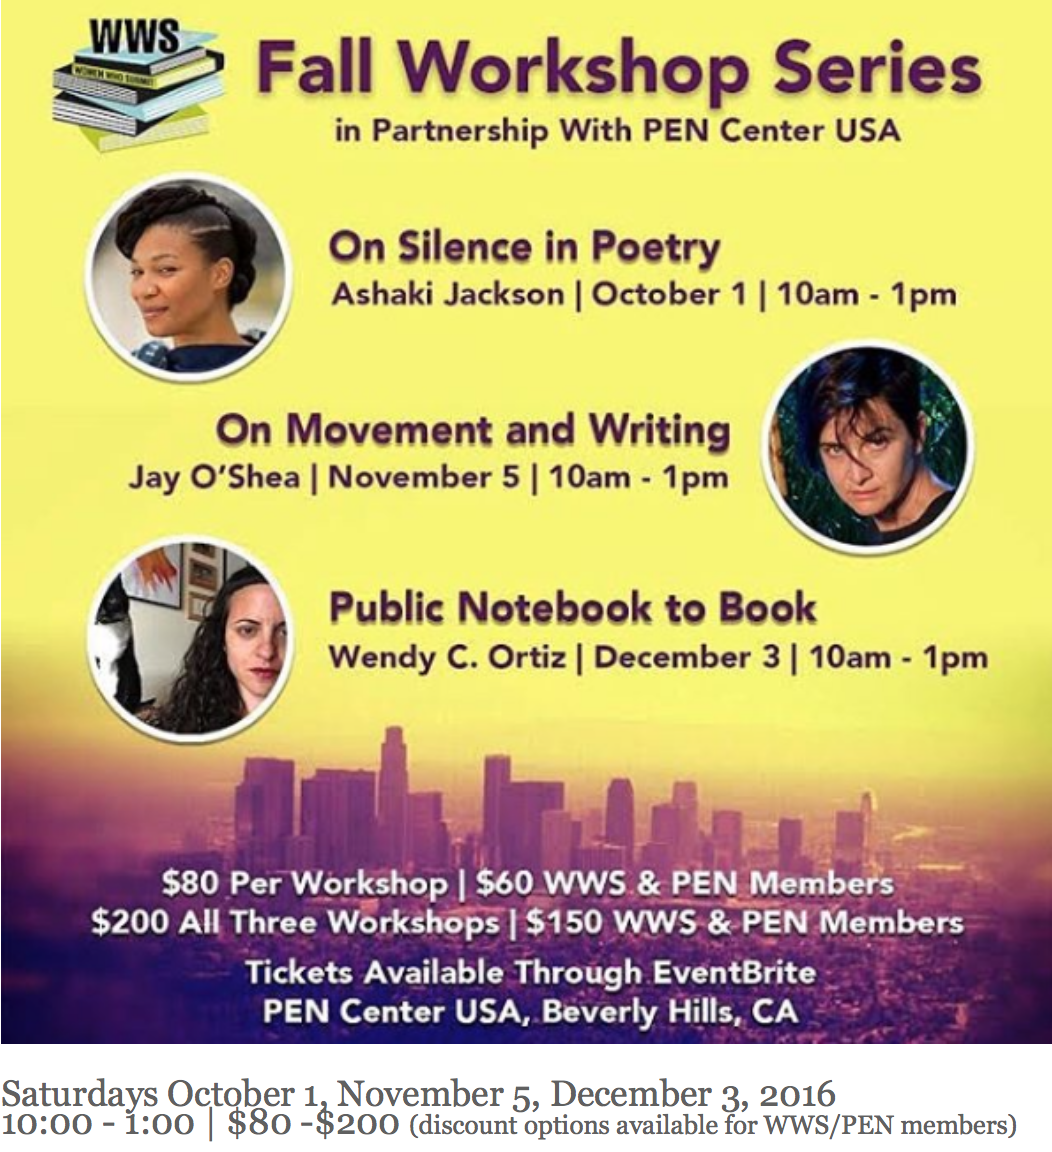 Women Who Submit Fall Workshop Series